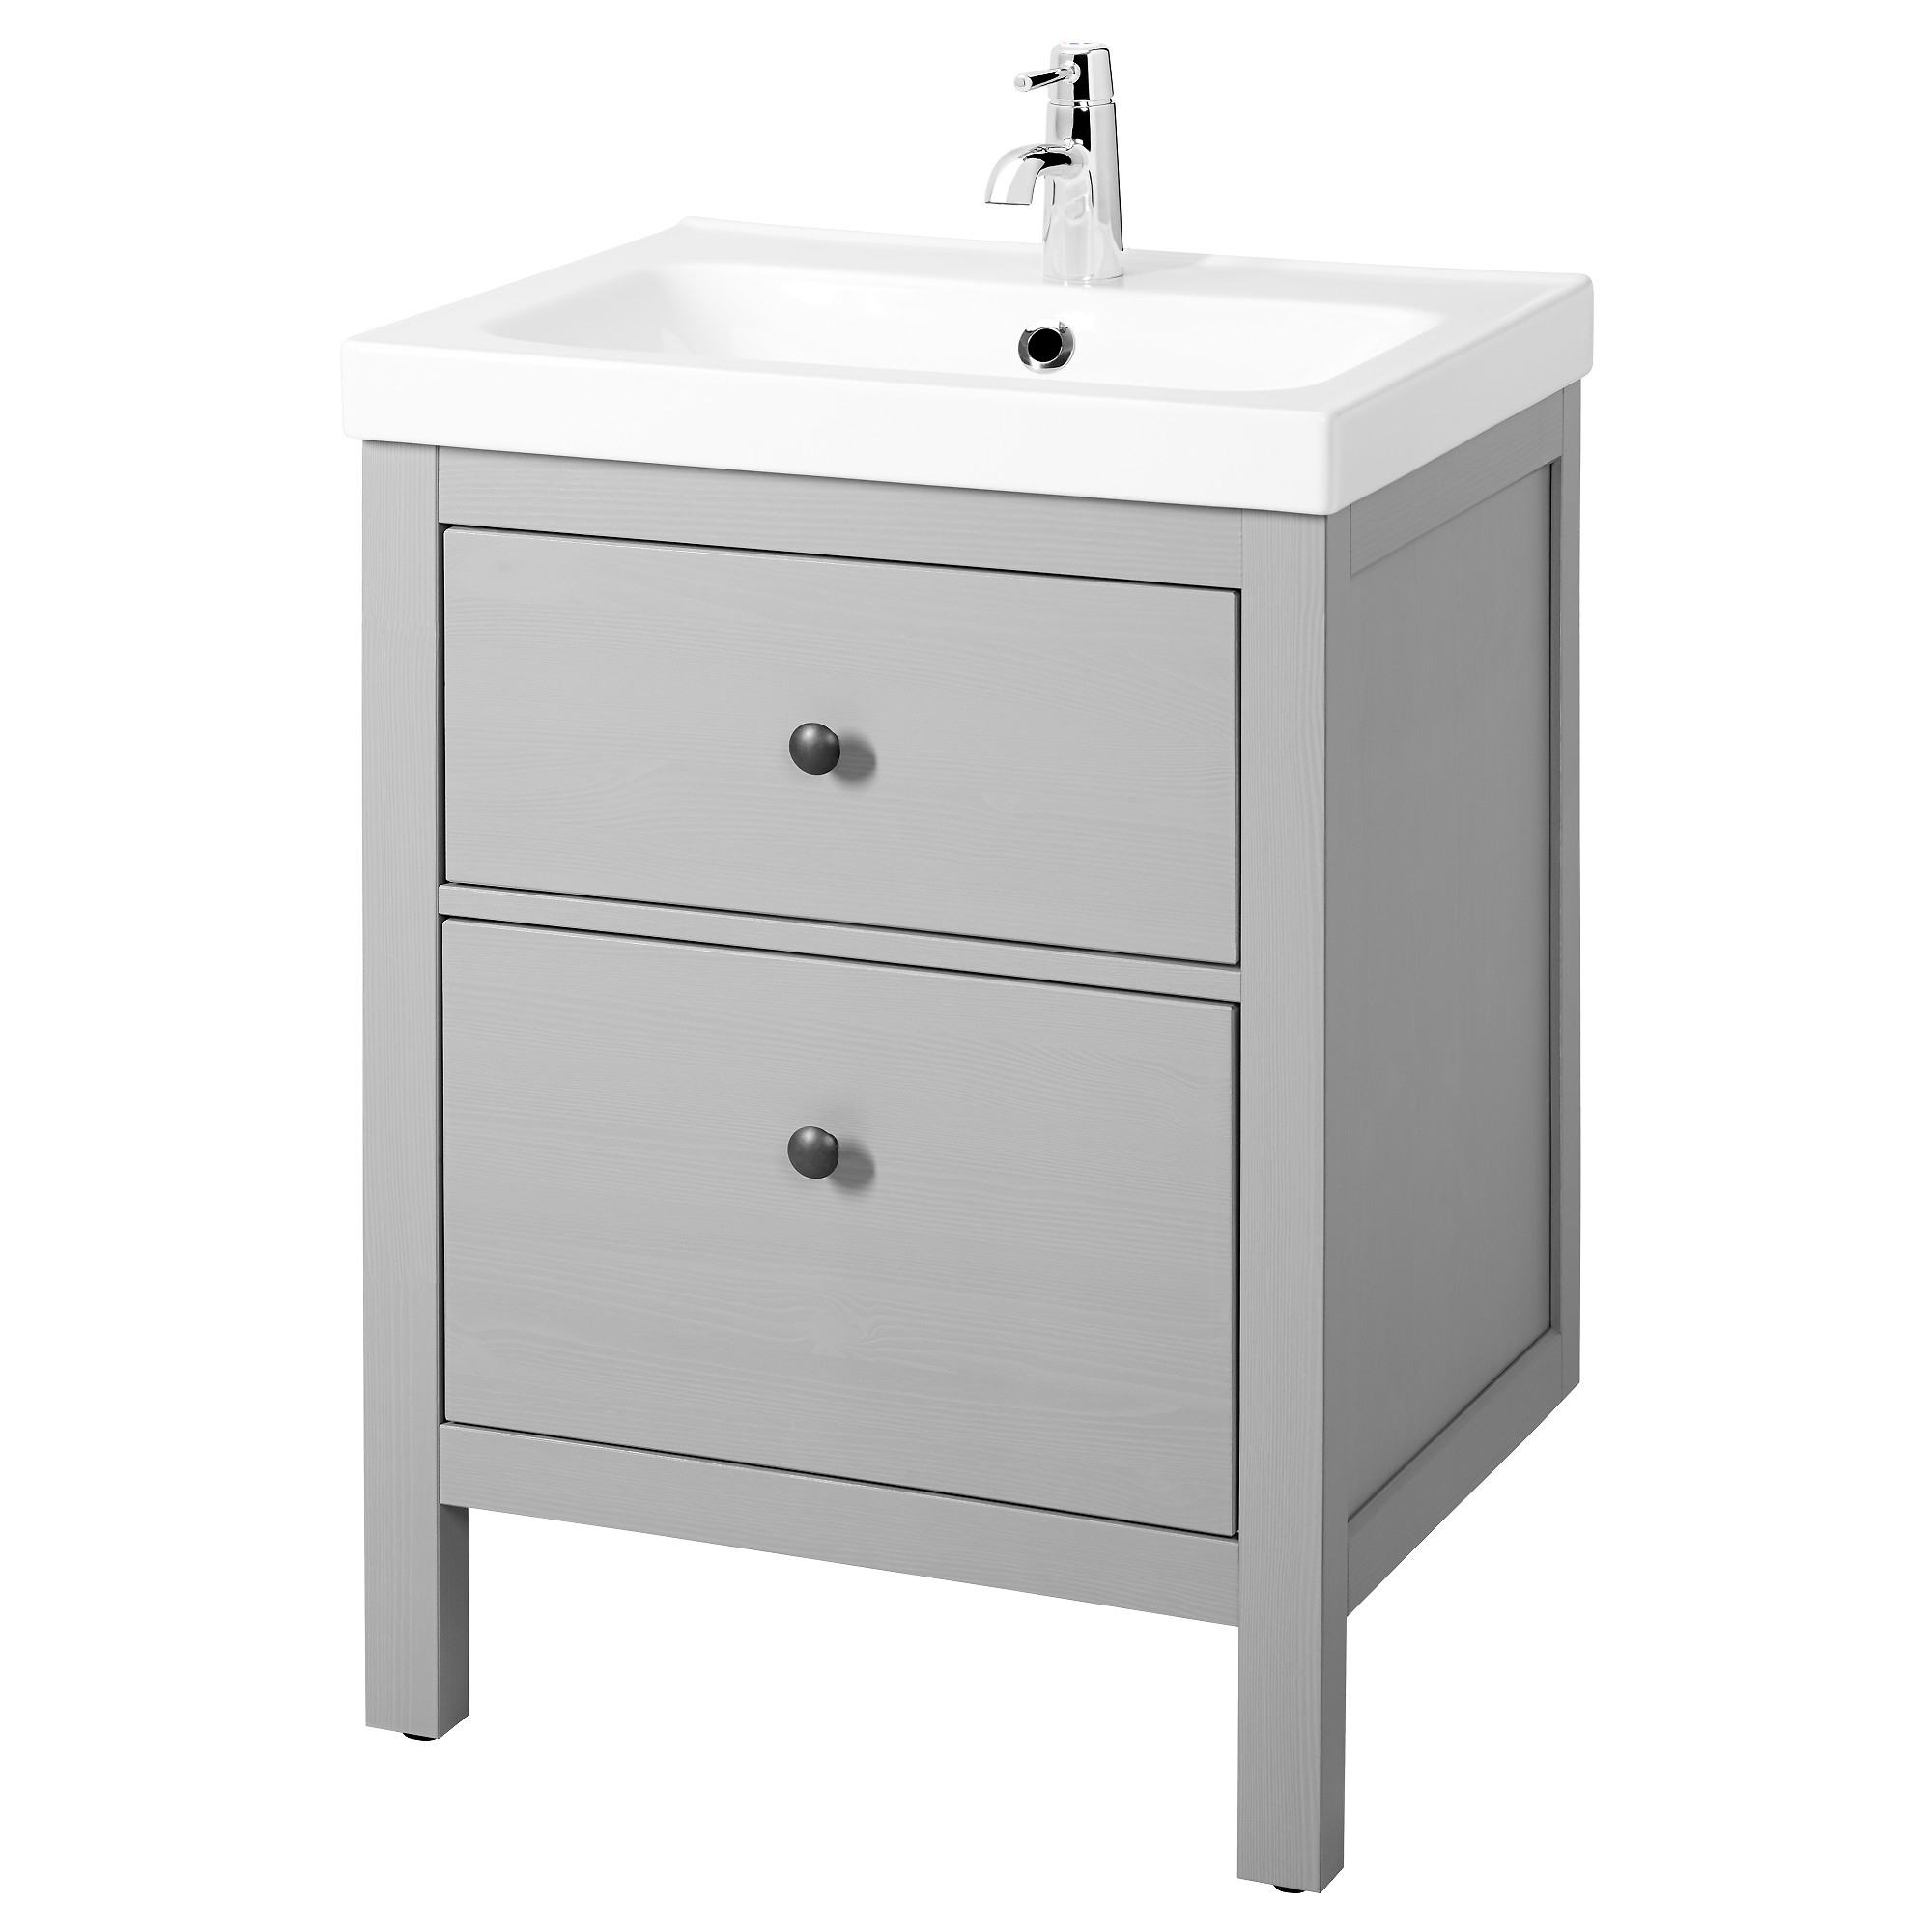 HEMNES / ODENSVIK Sink cabinet with 2 drawers - gray - IKEA